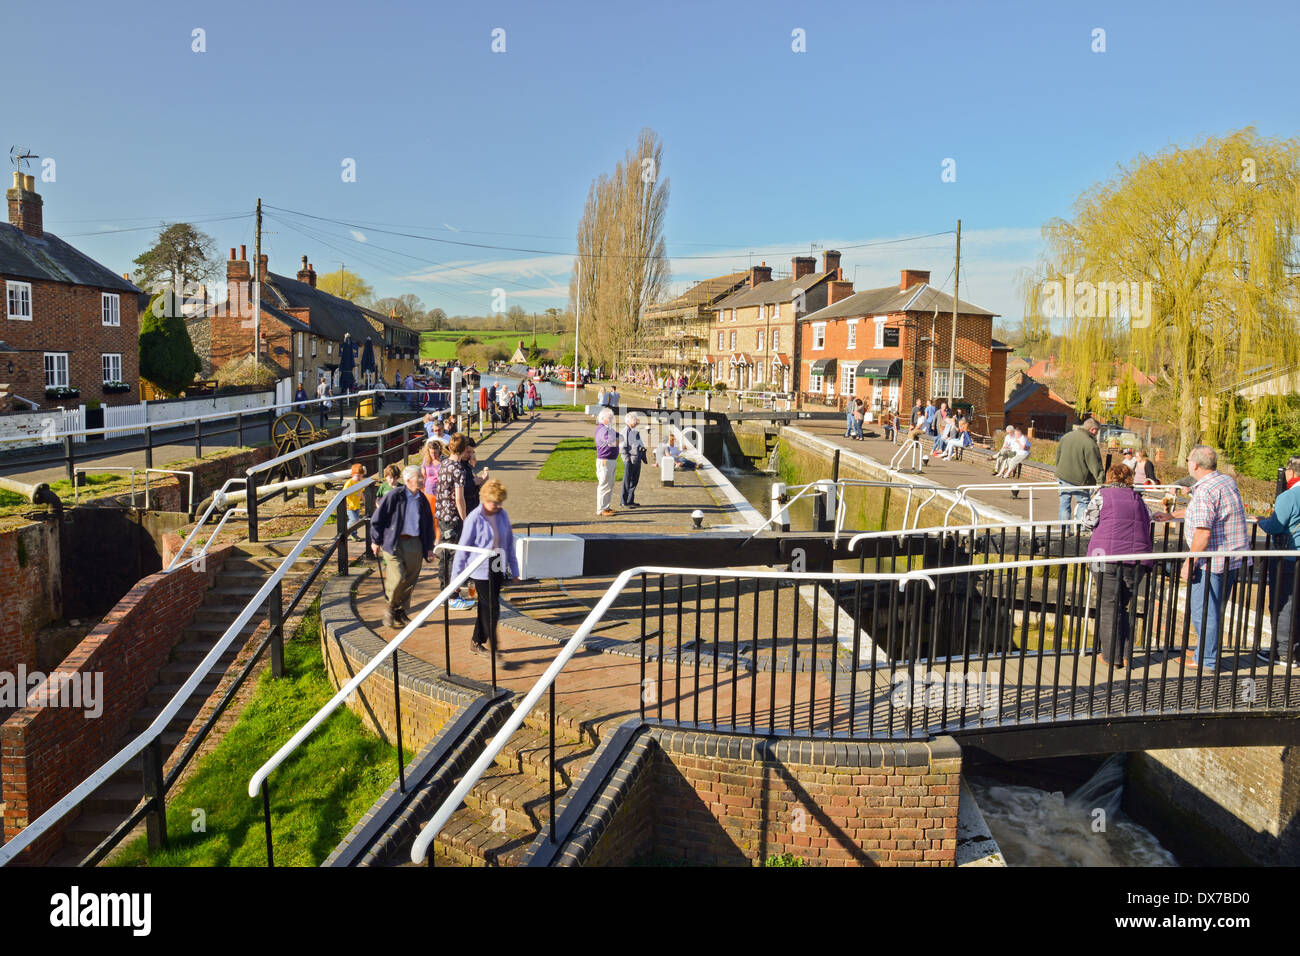 Gathering of people Stoke Bruerne Northamptonshire - Stock Image